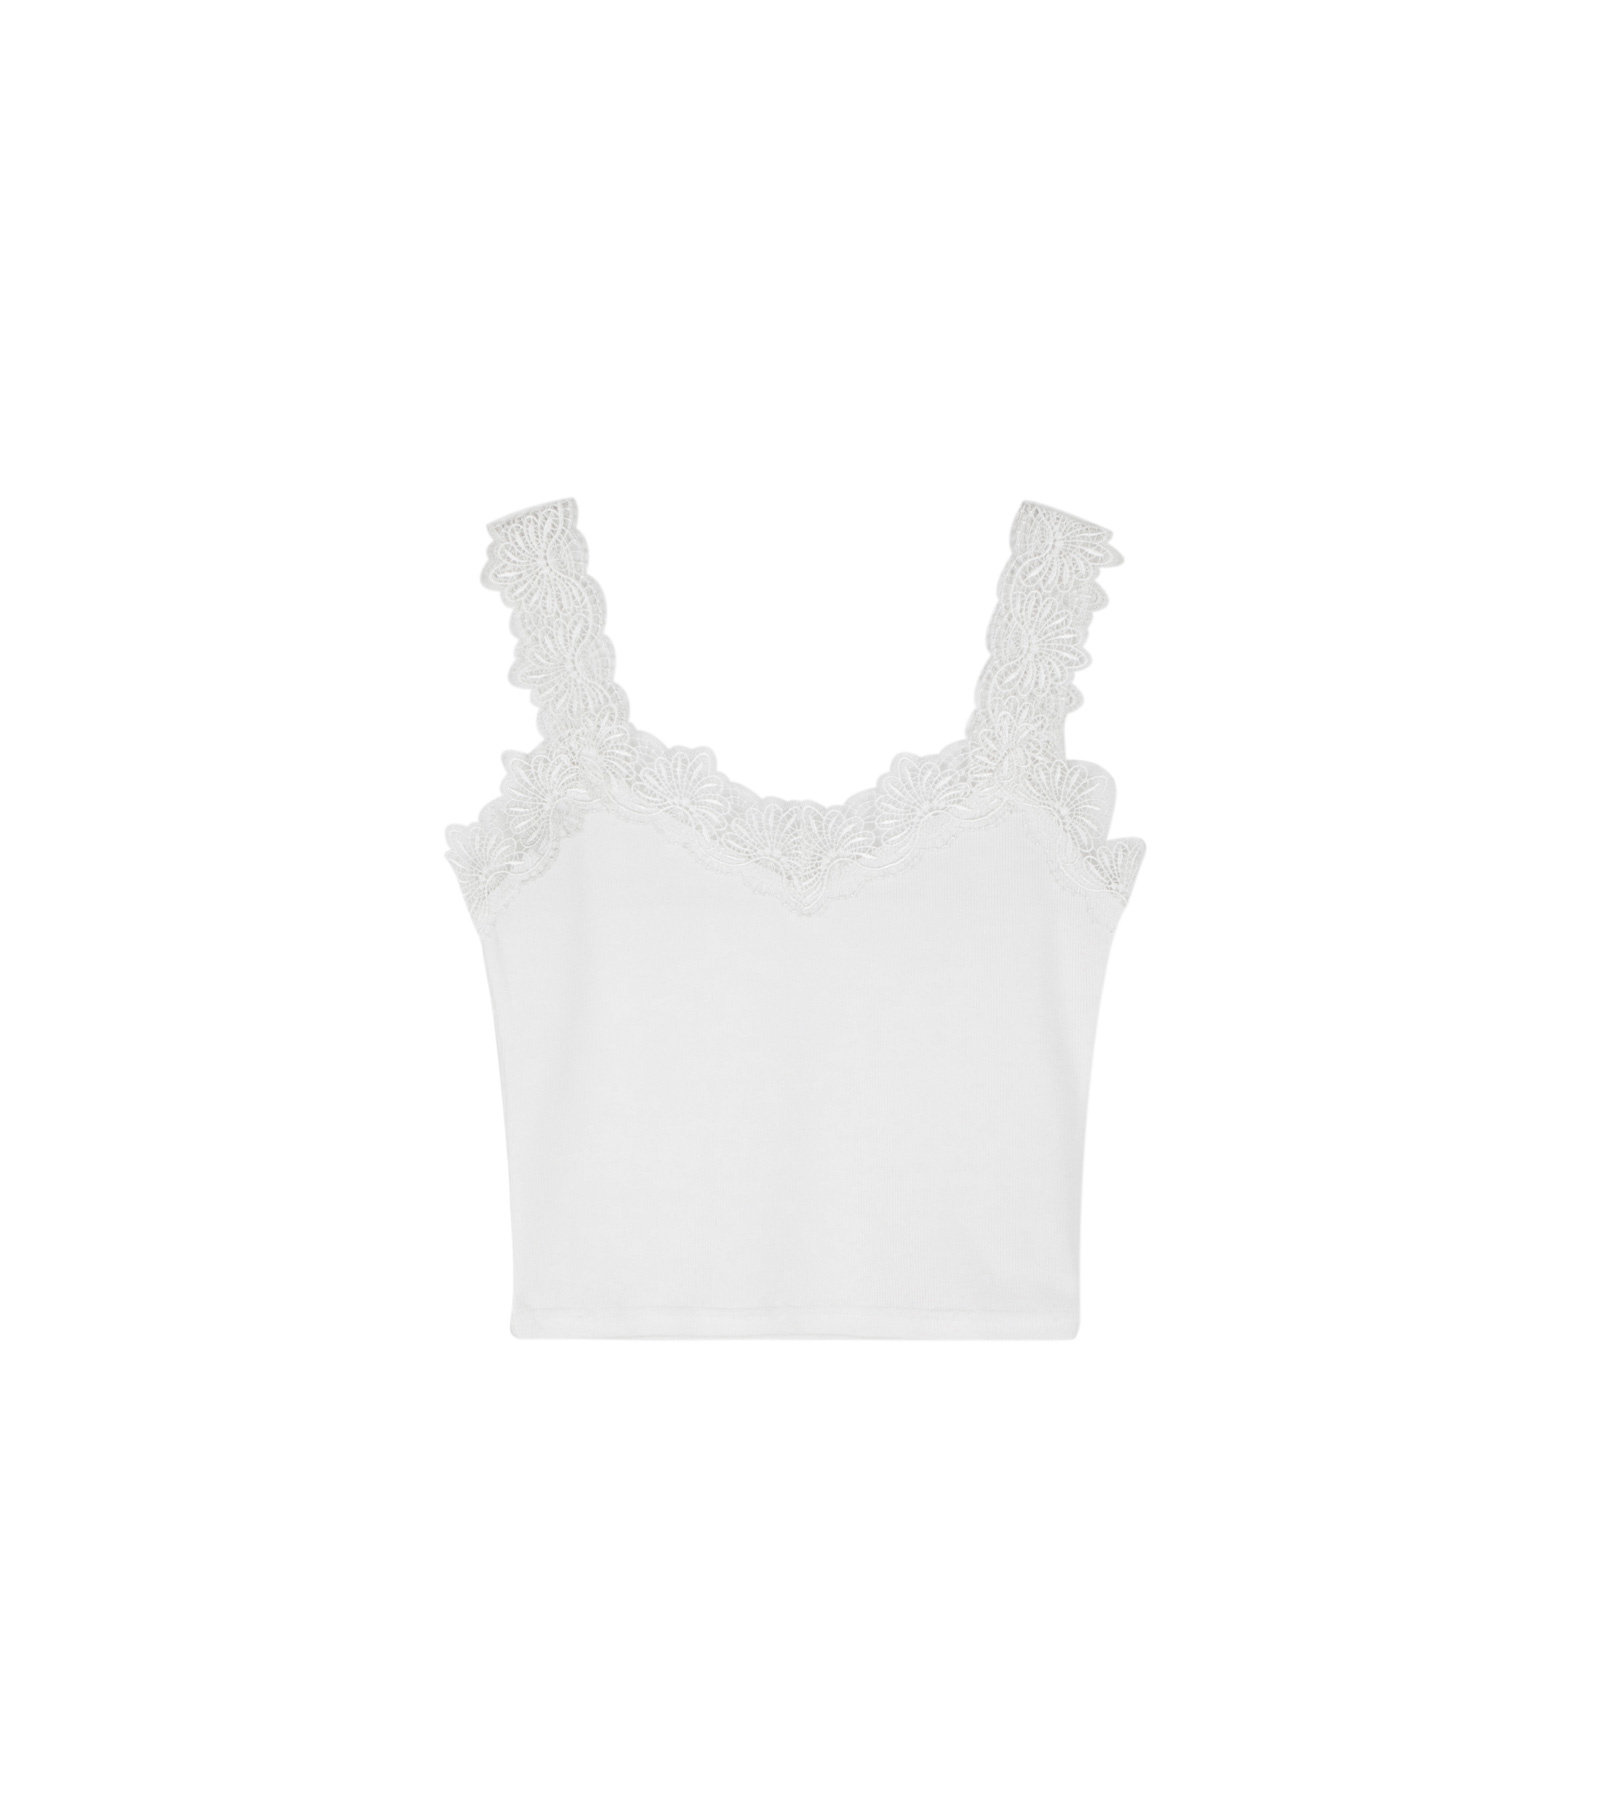 Paired sleeveless top